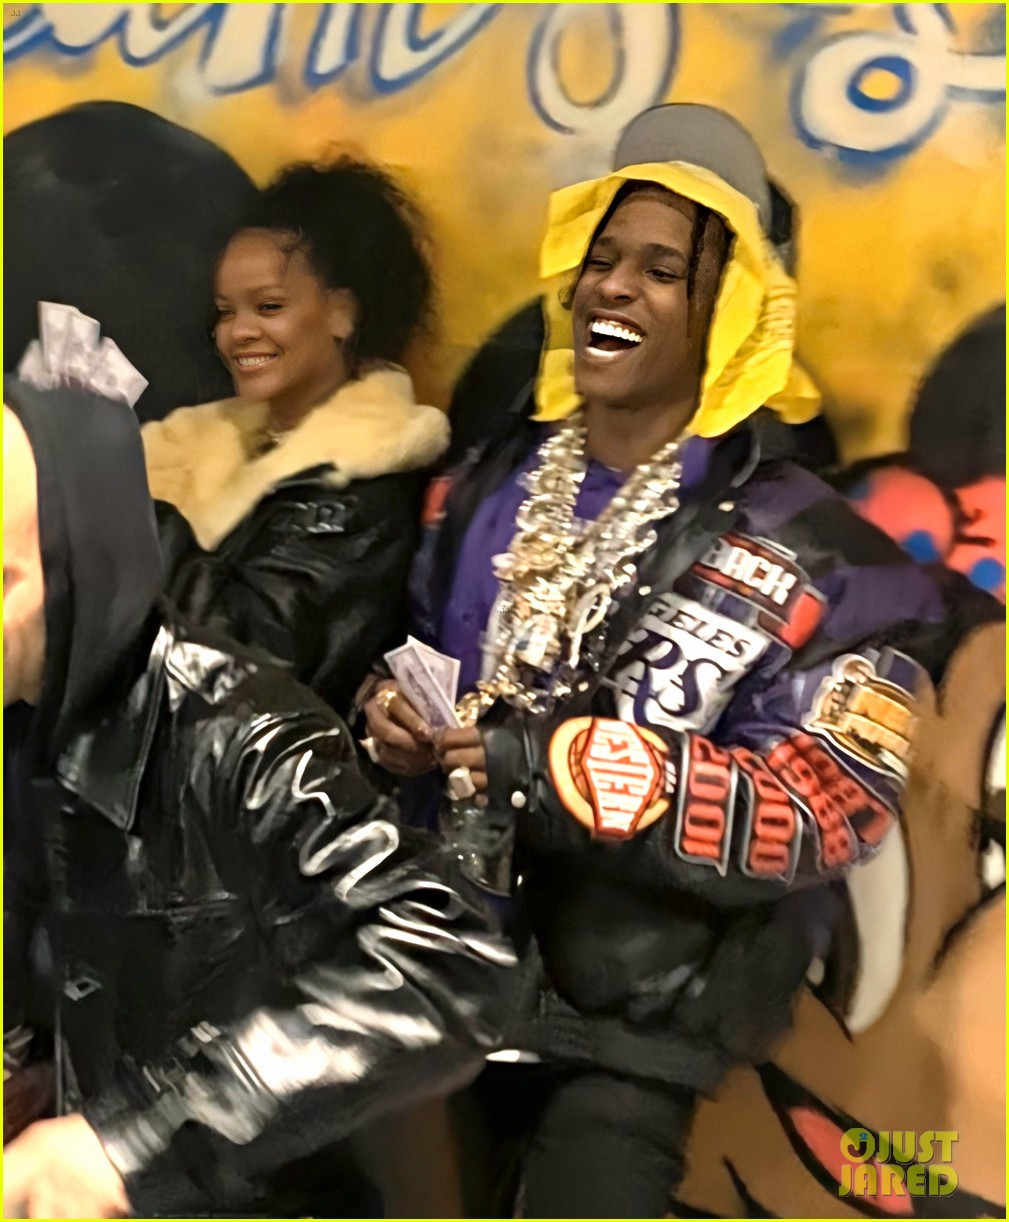 rihanna spends time with asap rocky after her breakup 01.4417481